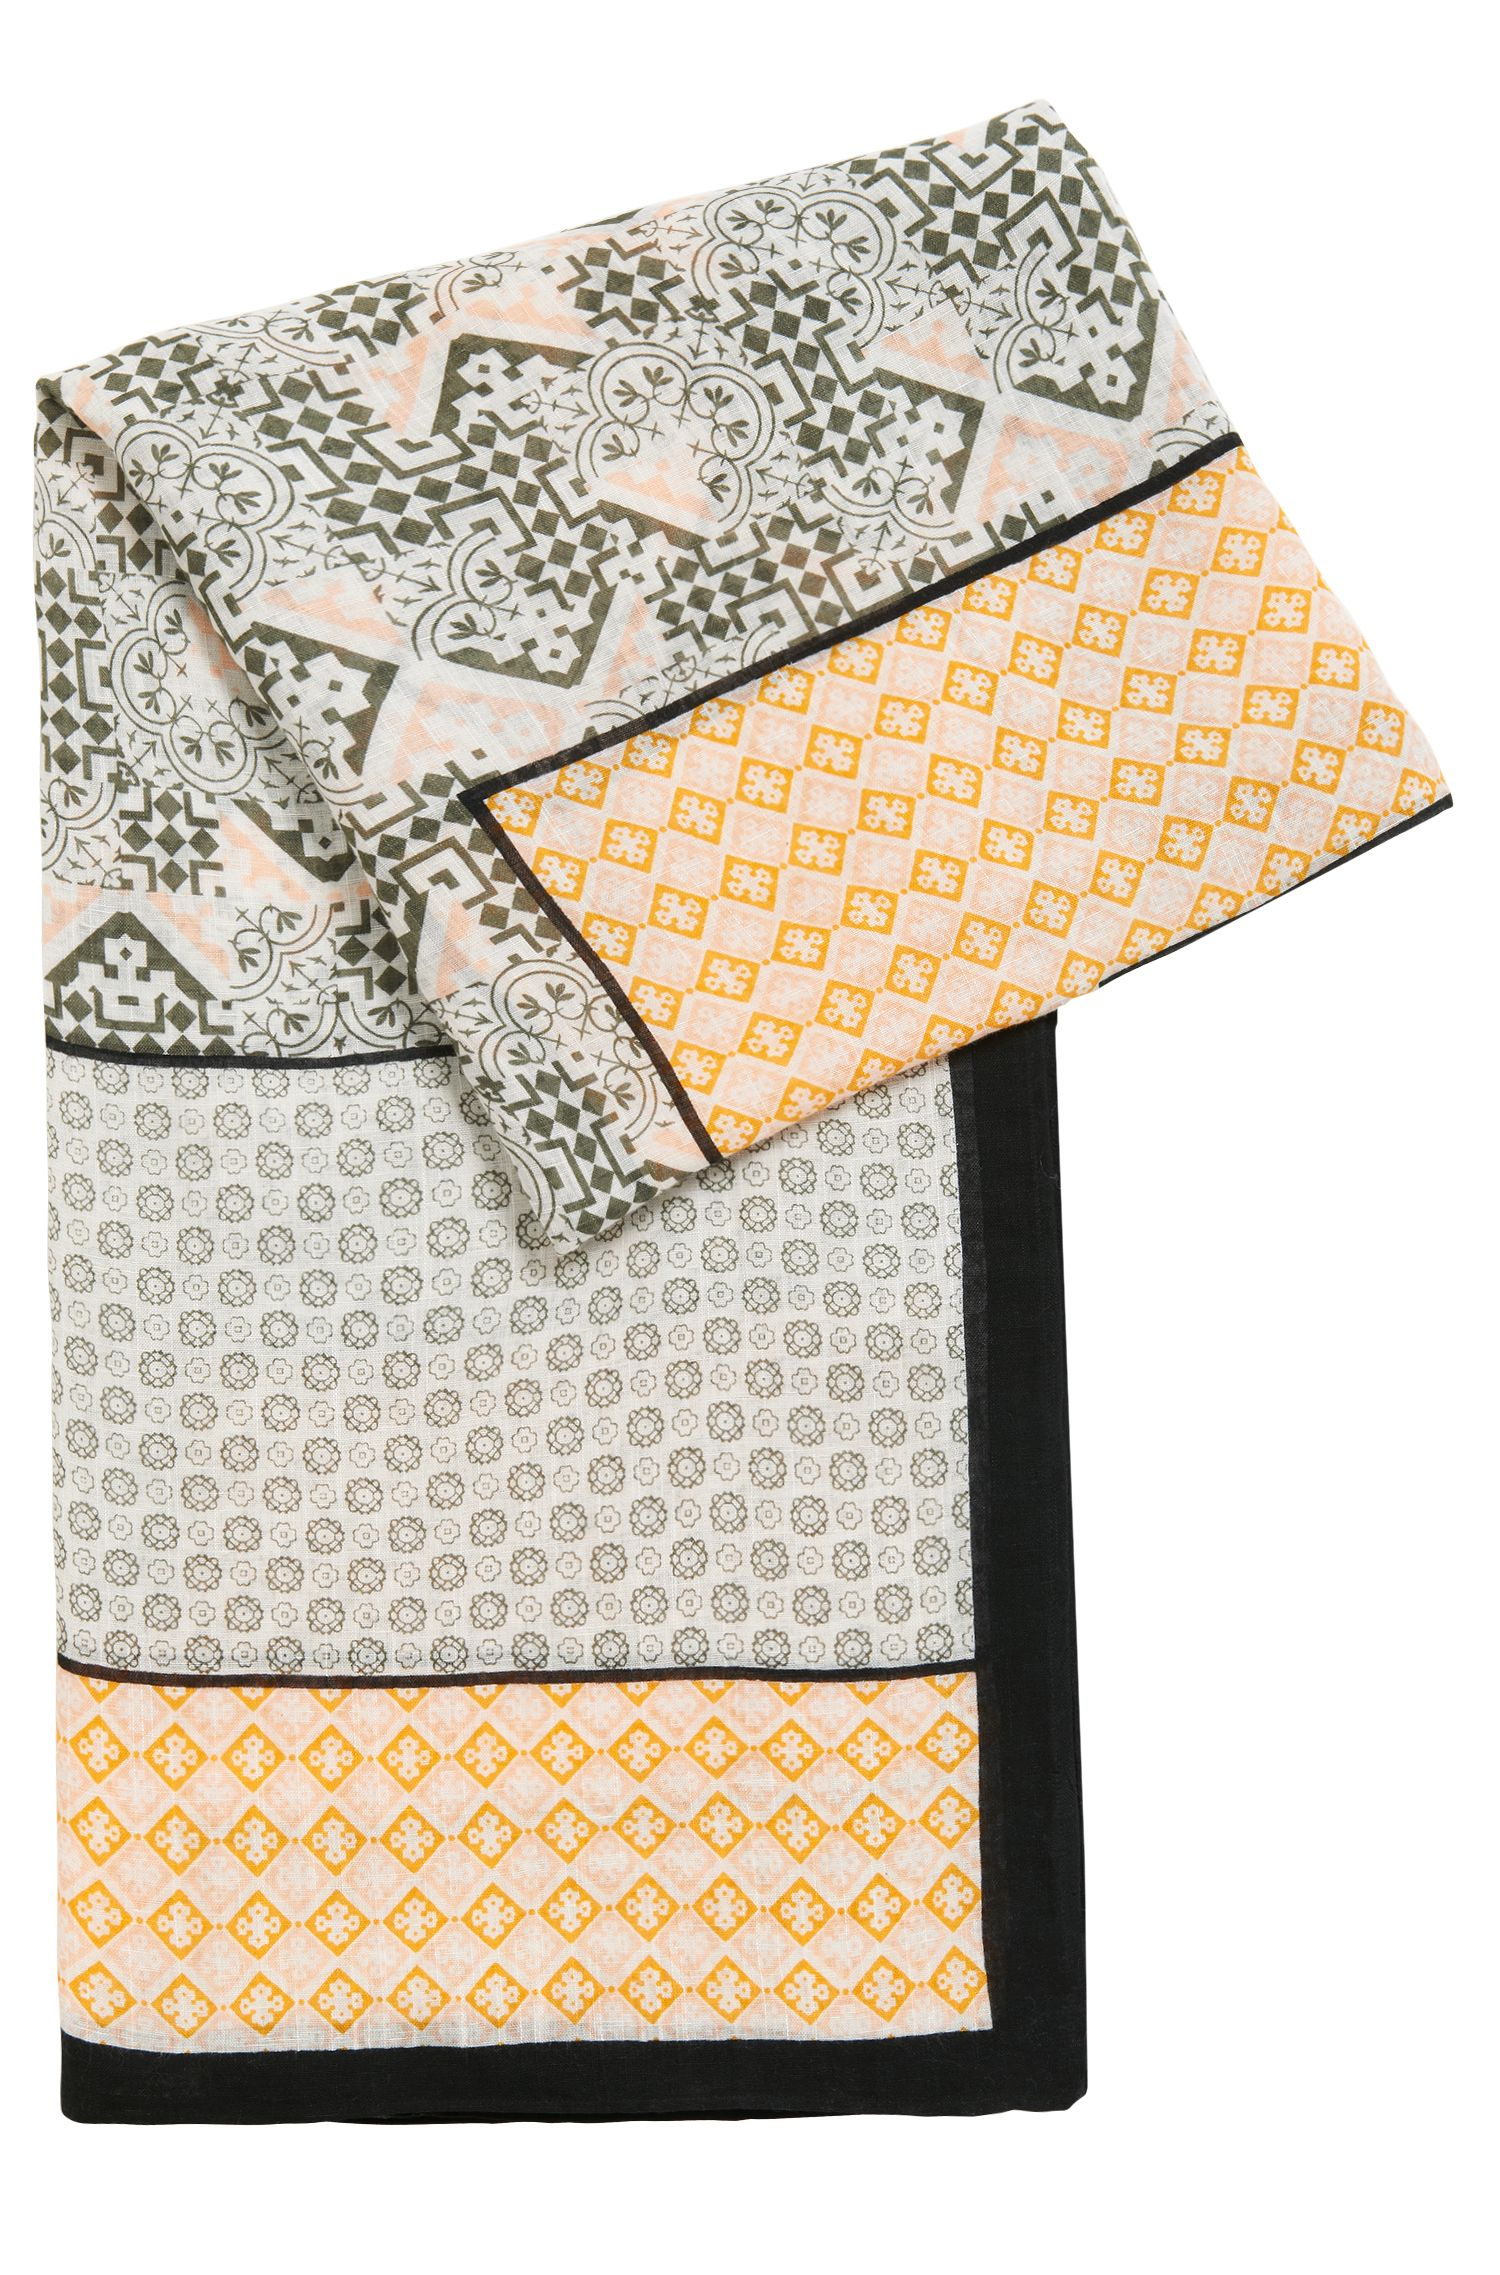 Linen-blend scarf with multi-pattern print, Patterned